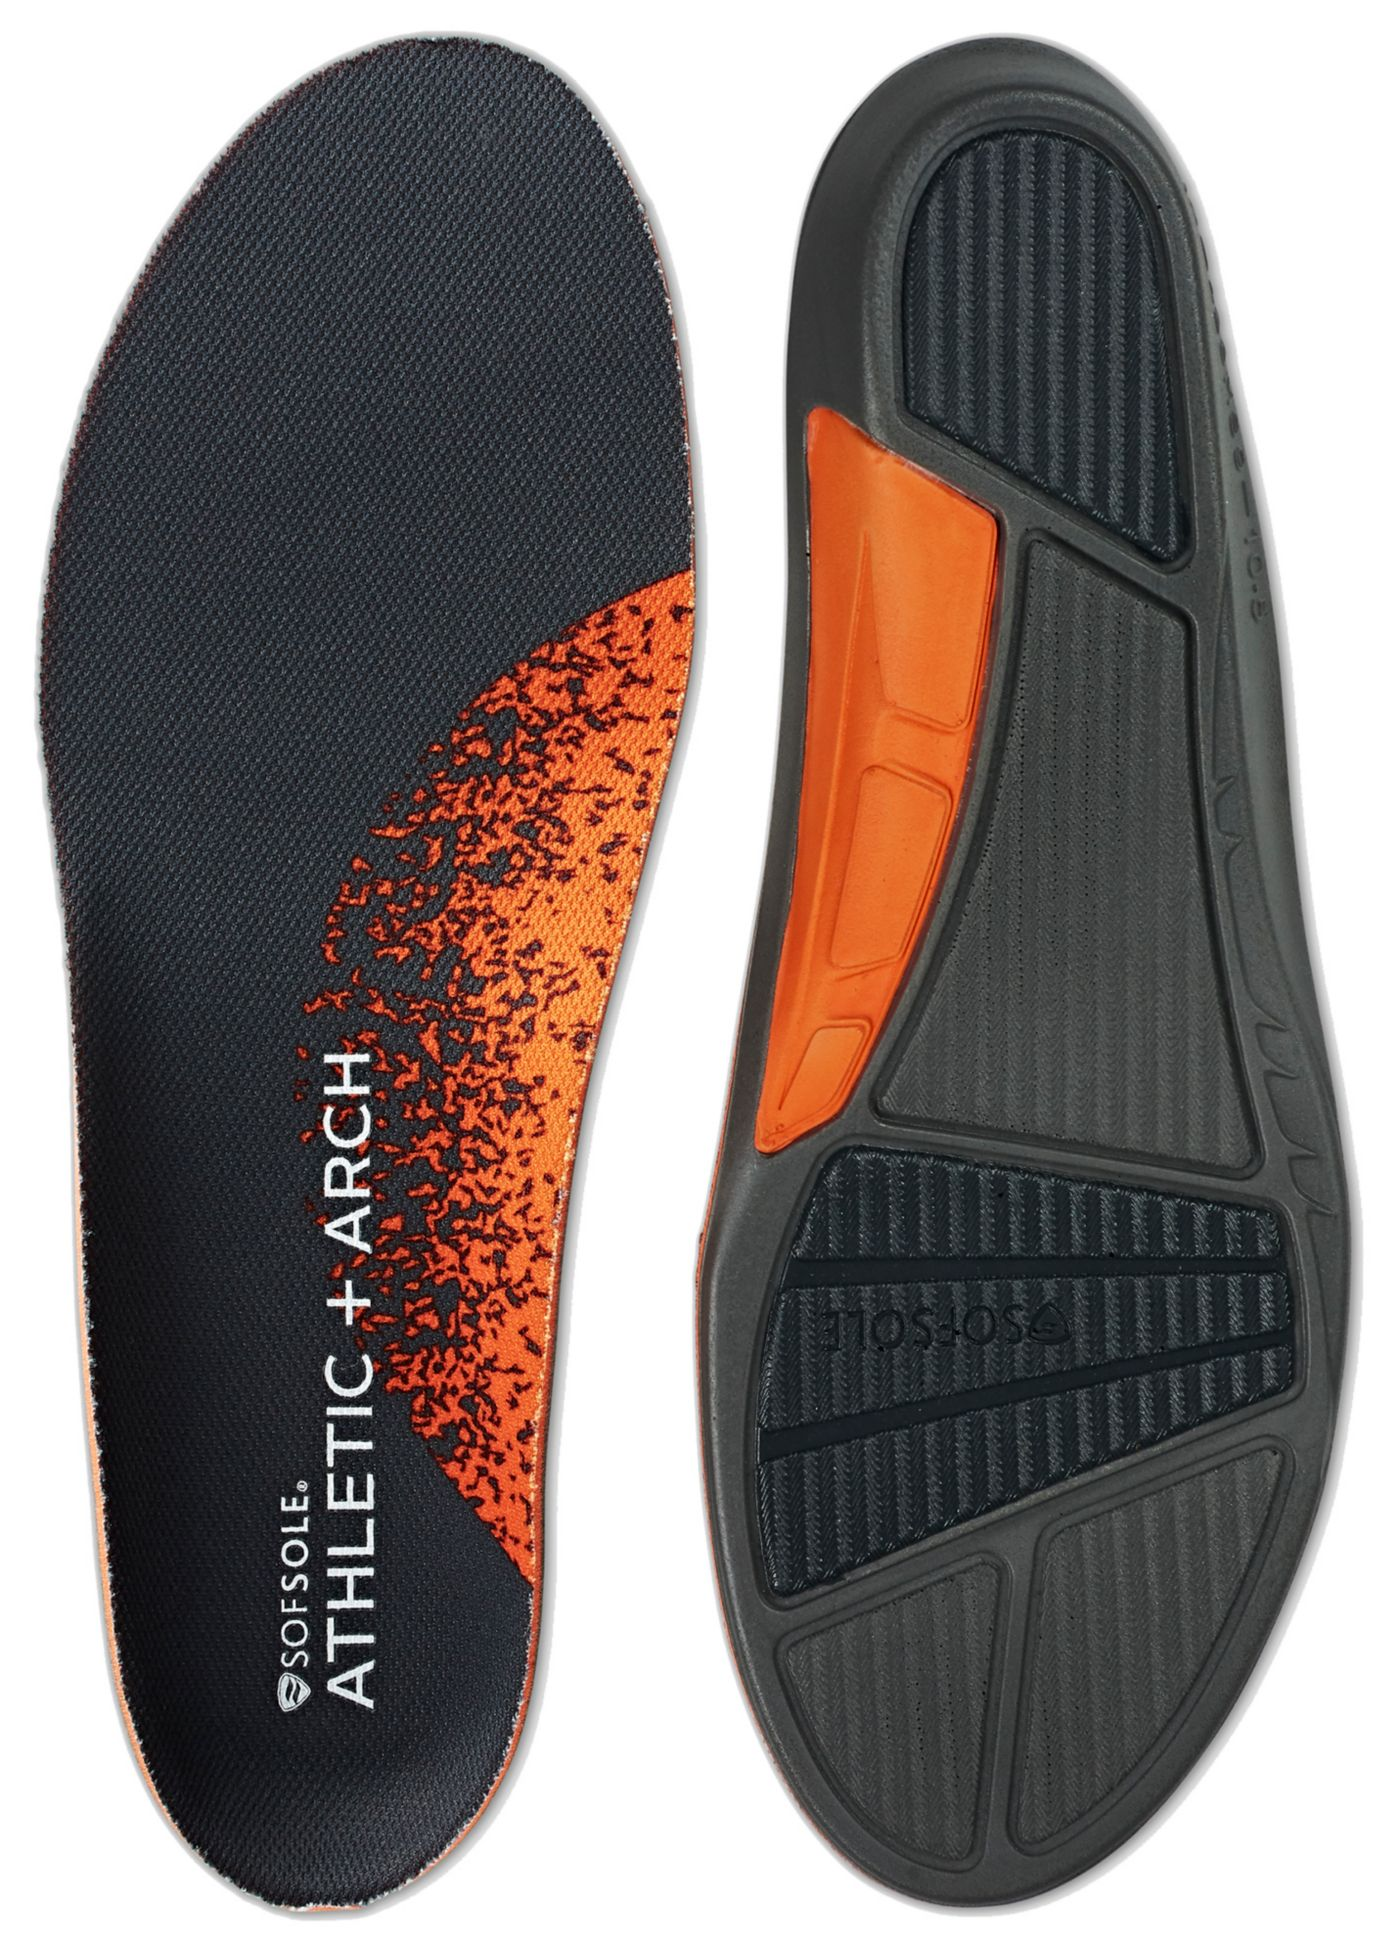 Sofesole Women's Athletic Arch Insoles